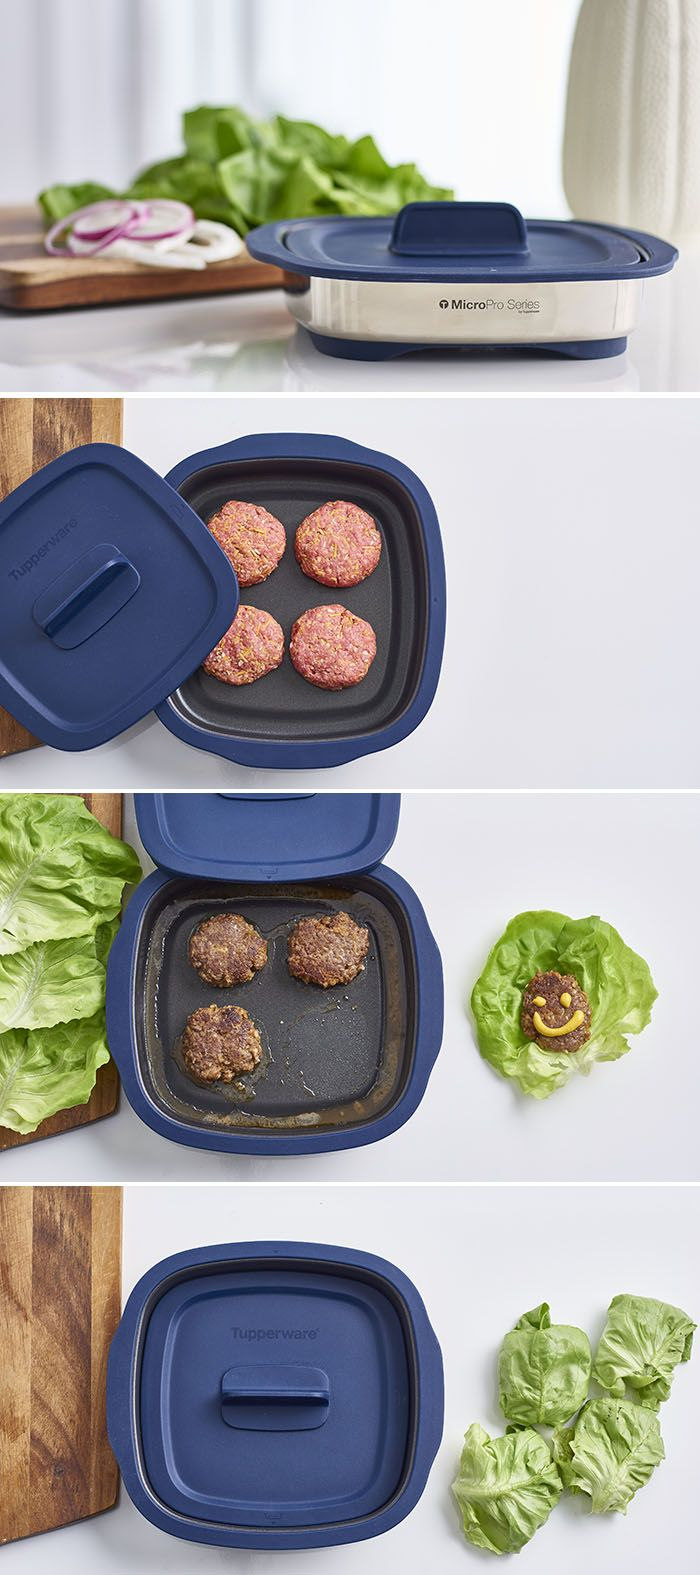 Slide into mealtime with Grilled Lettuce Wrap Sliders that sizzle from microwave to table.